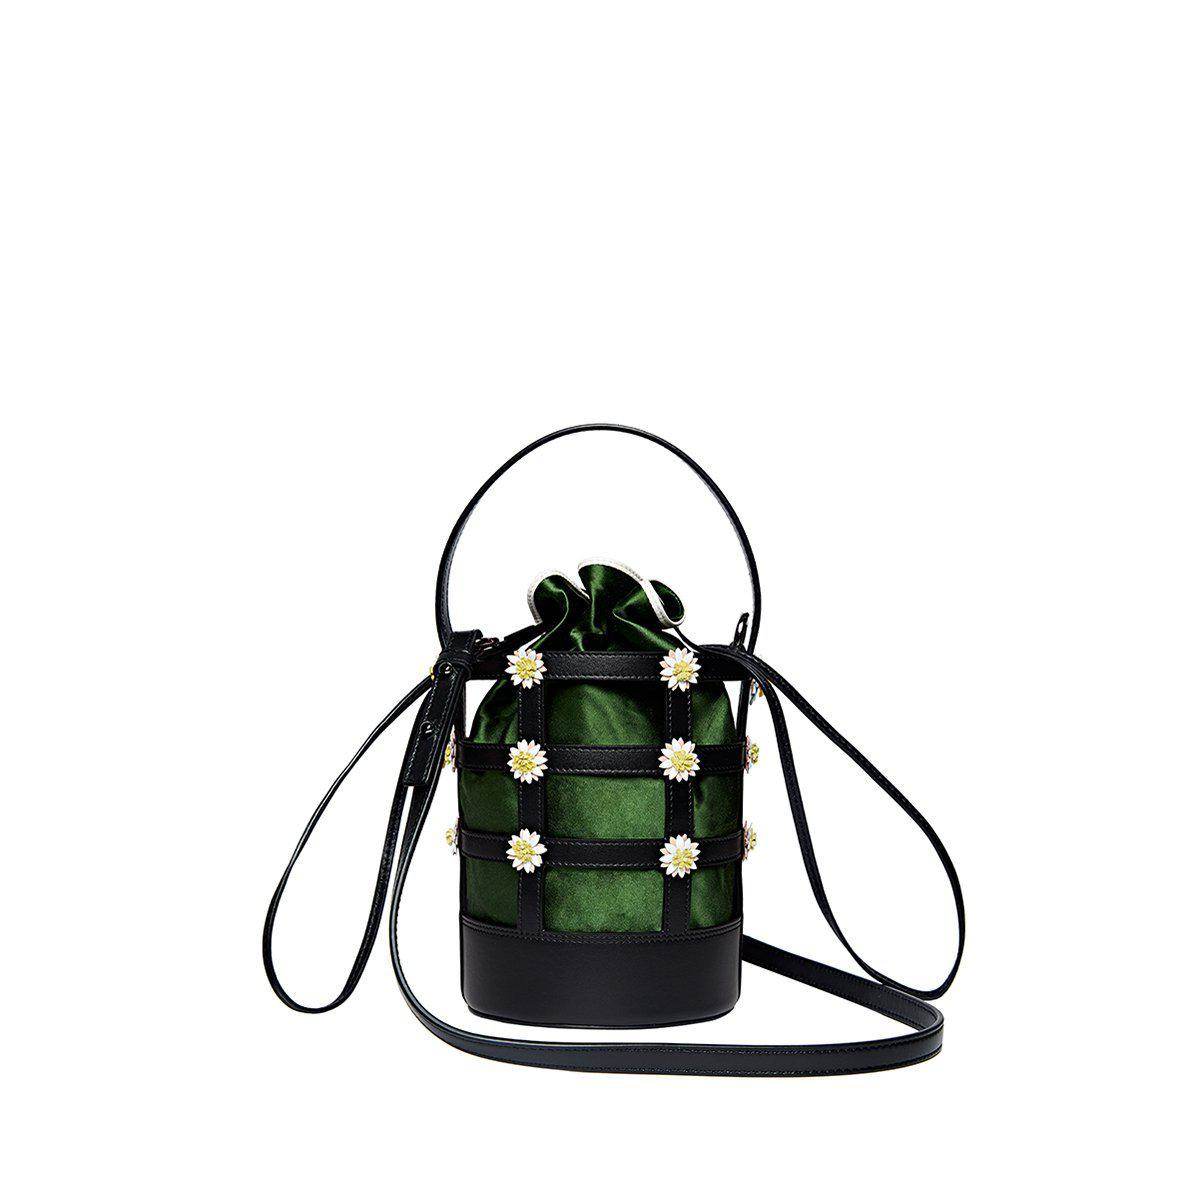 Miss Daisy Bucket Bag with Satin Pouch - Green